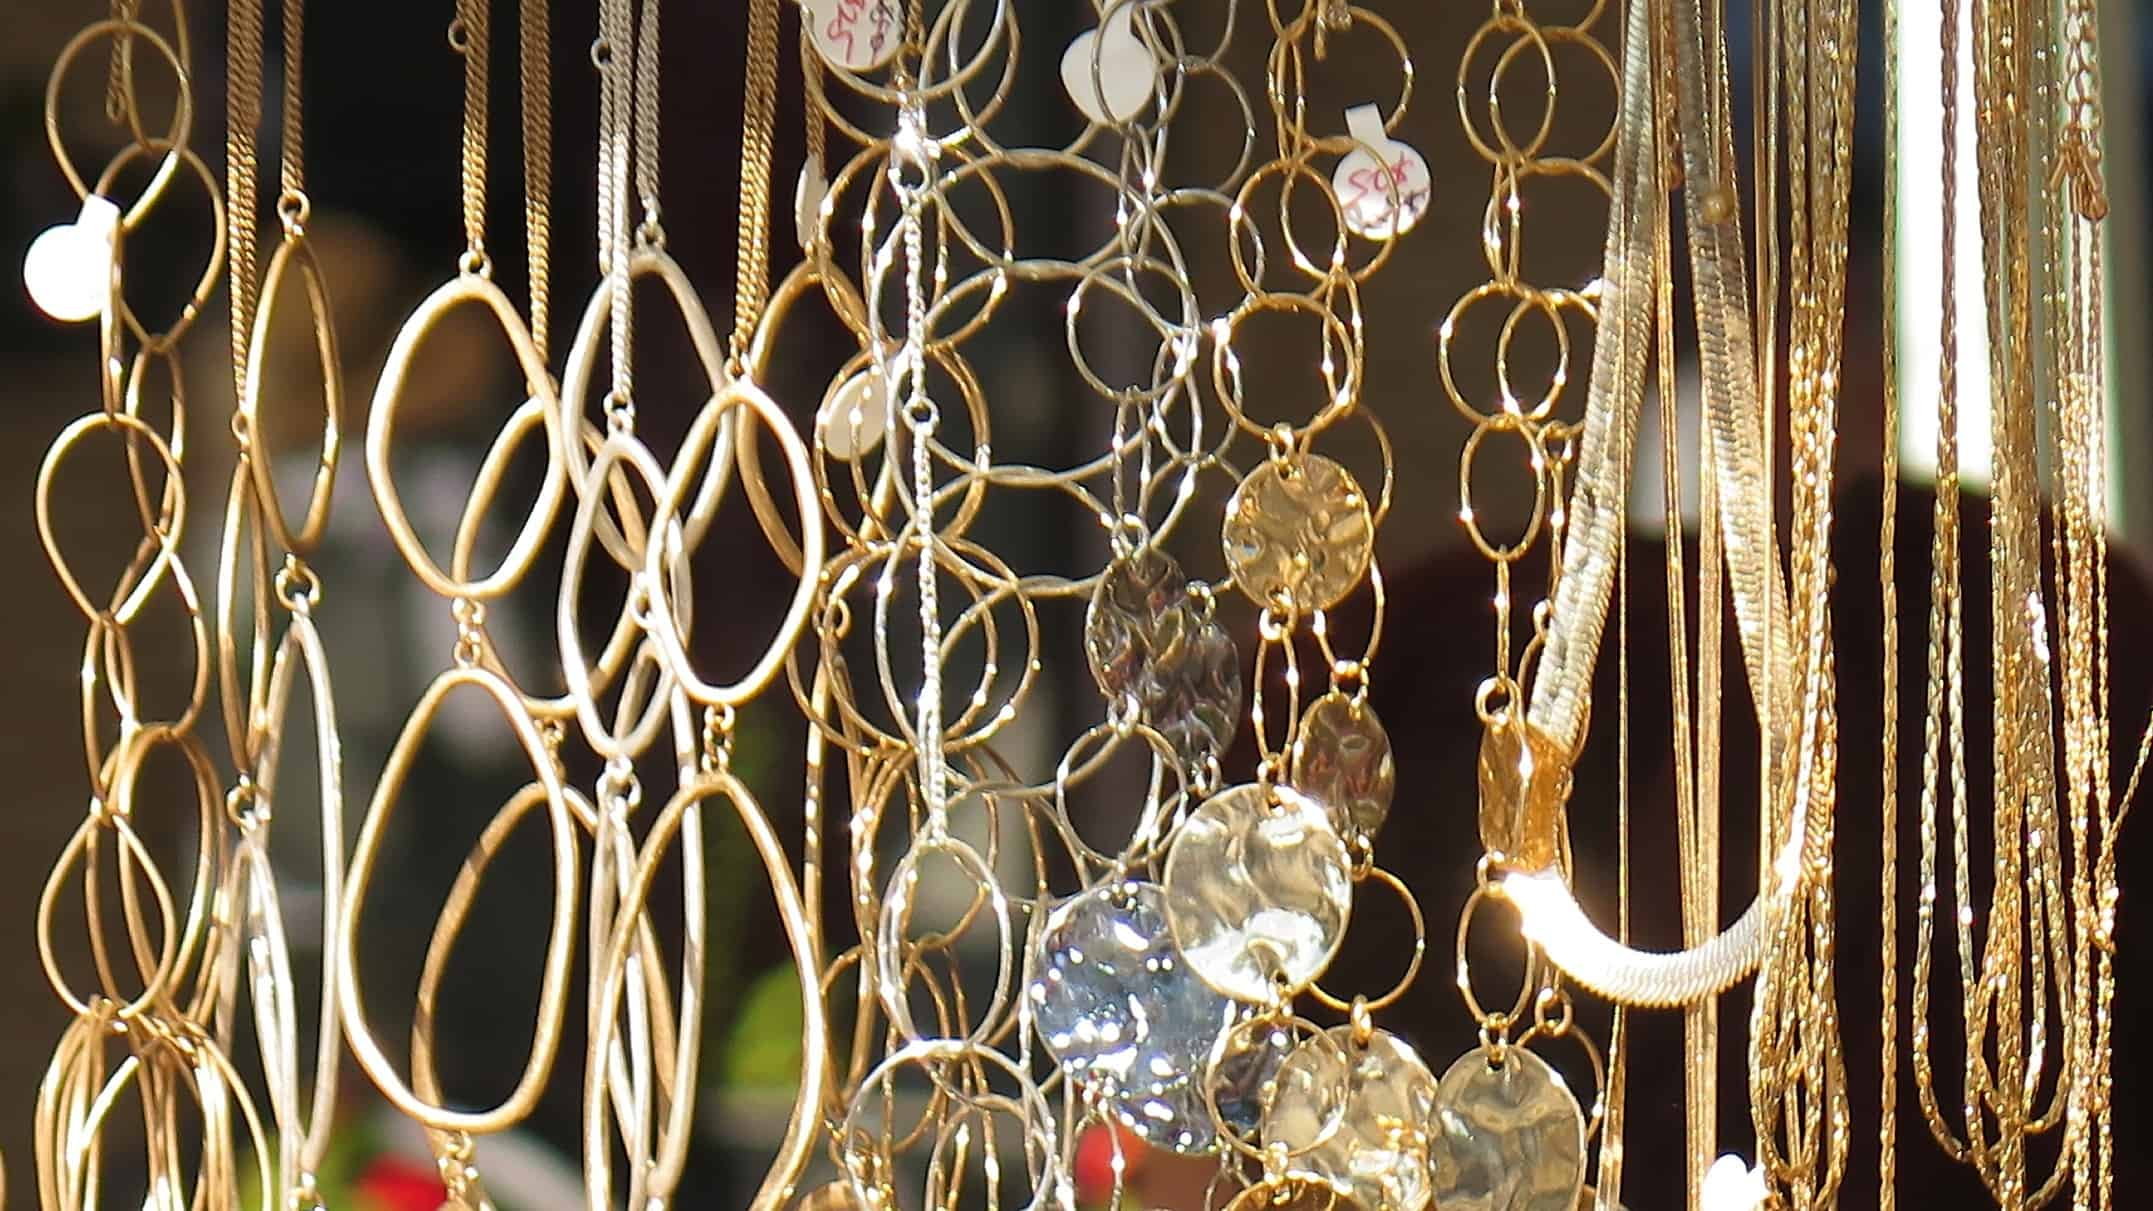 jewellery share price rise represented by lots of gold necklaces hanging in a row